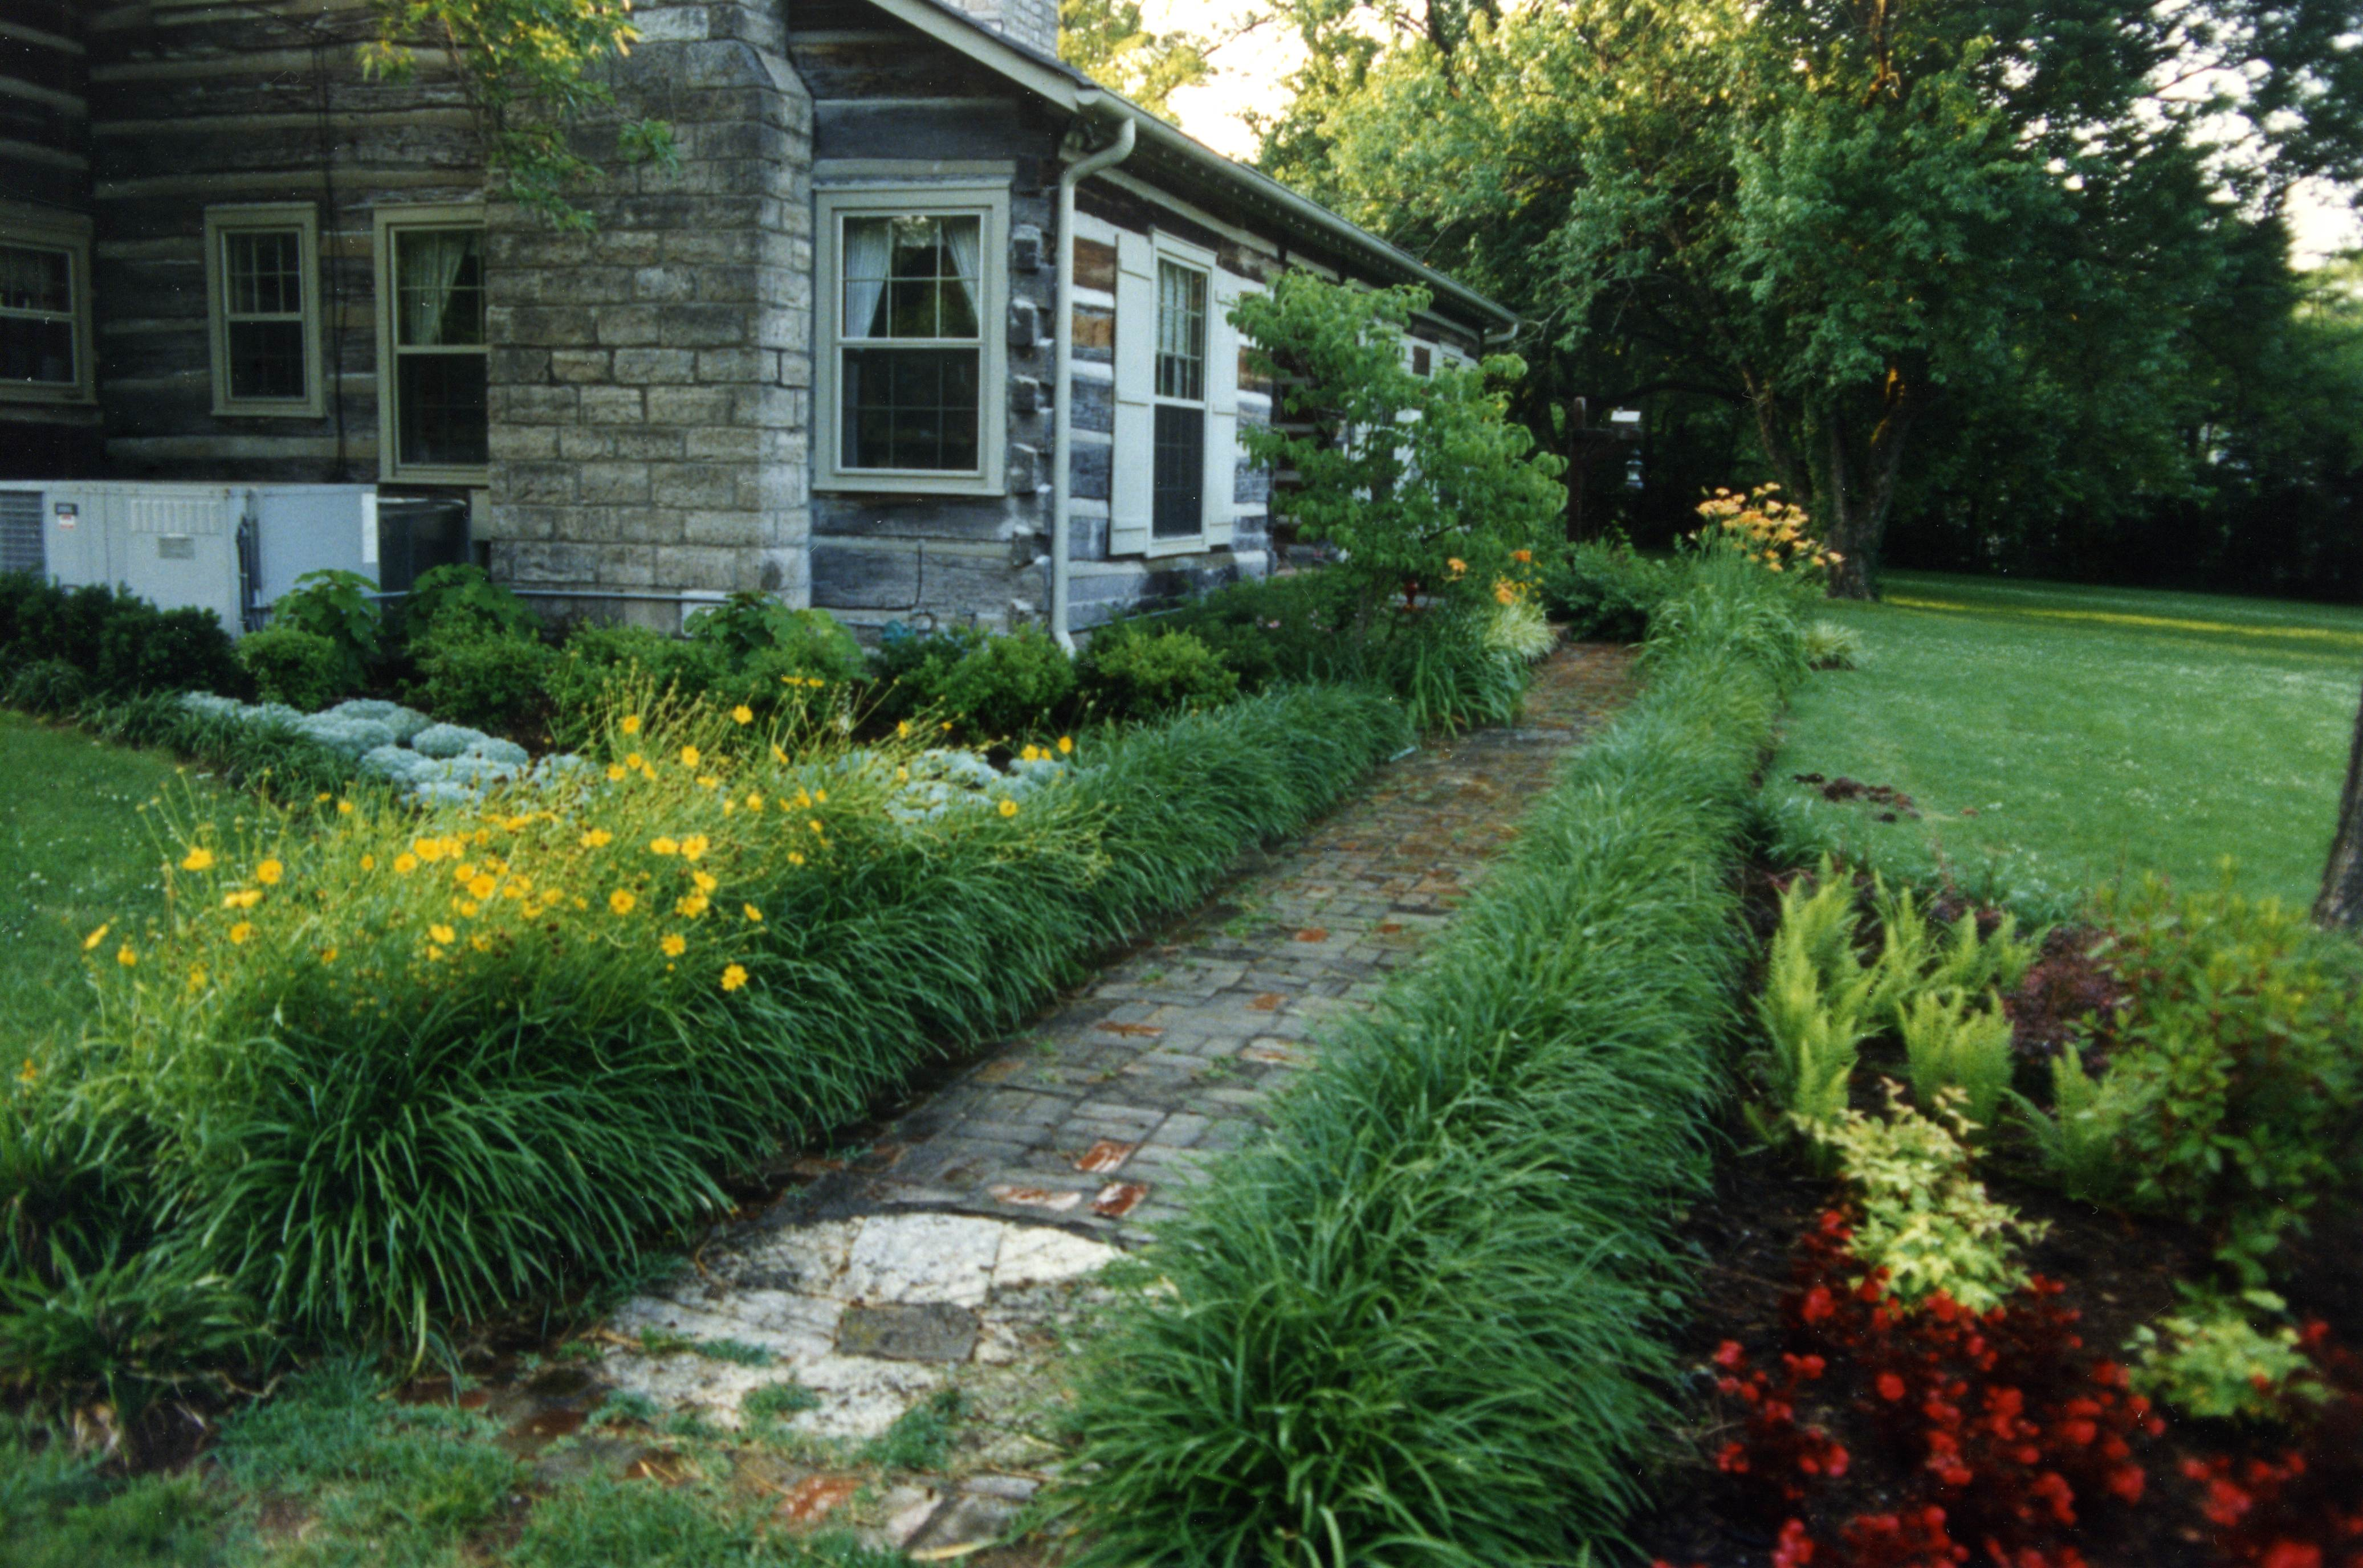 Residential Landscape Design for a Home on Granny White Pike